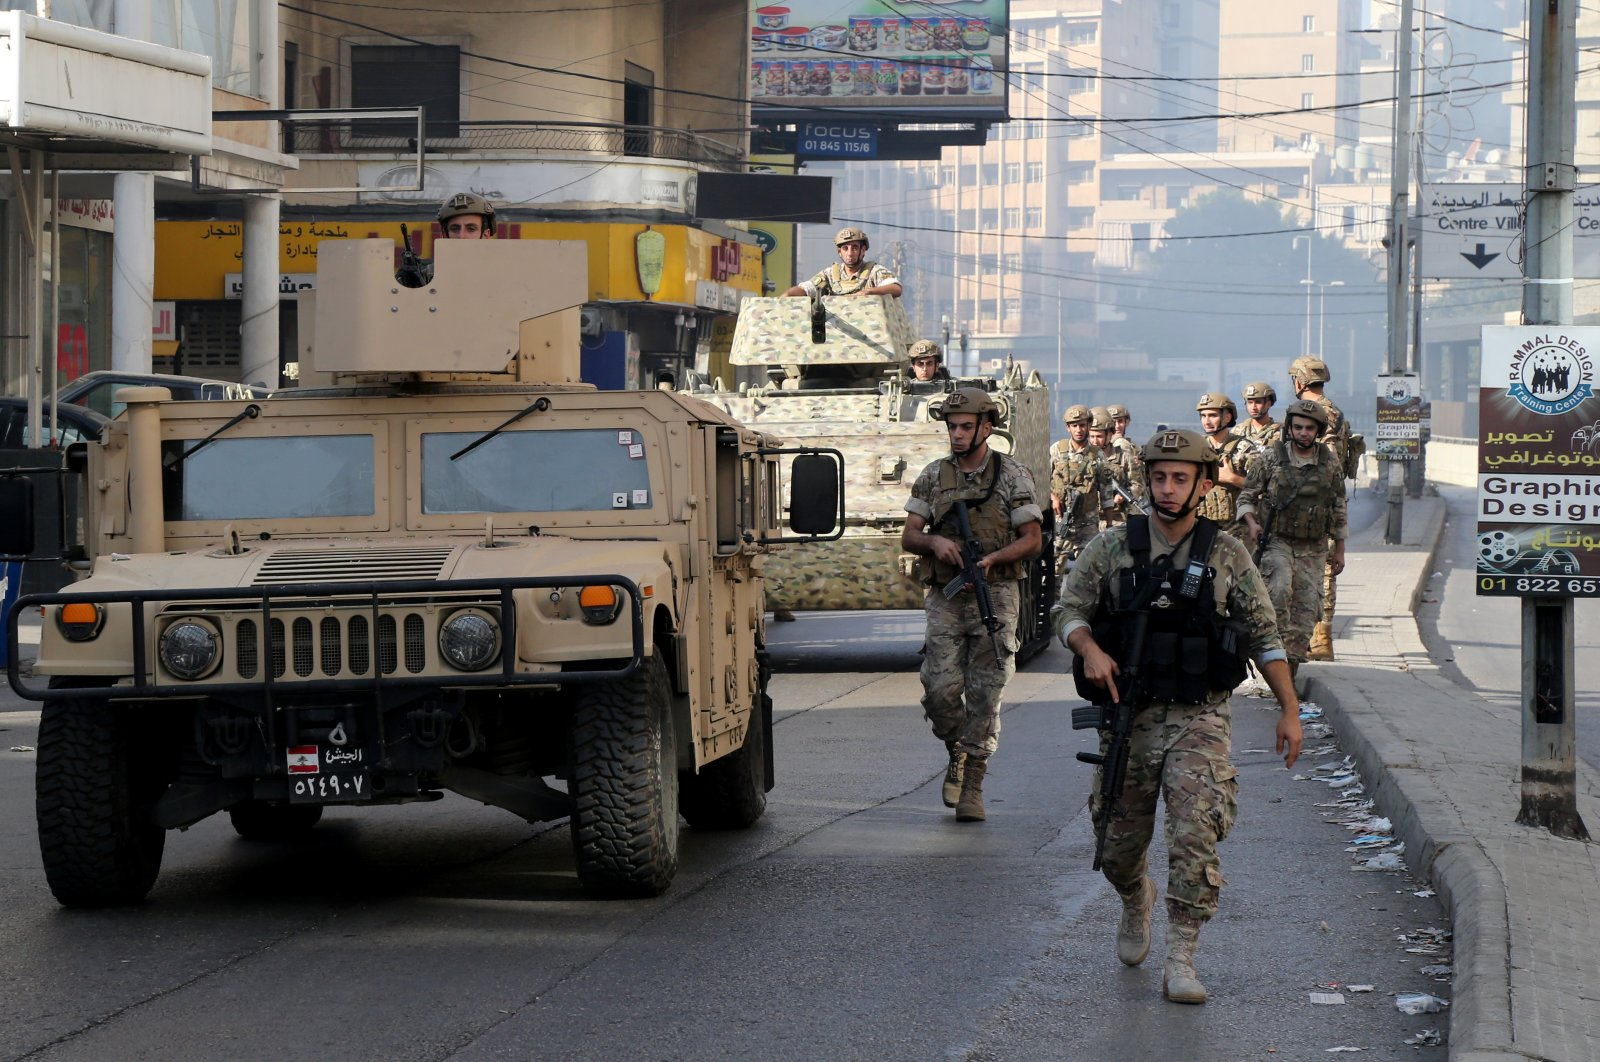 Lebanese military forces deployed in a neighborhood where clashes took place, Tayouneh, Beirut, Lebanon, Oct. 14, 2021. (EPA Photo)